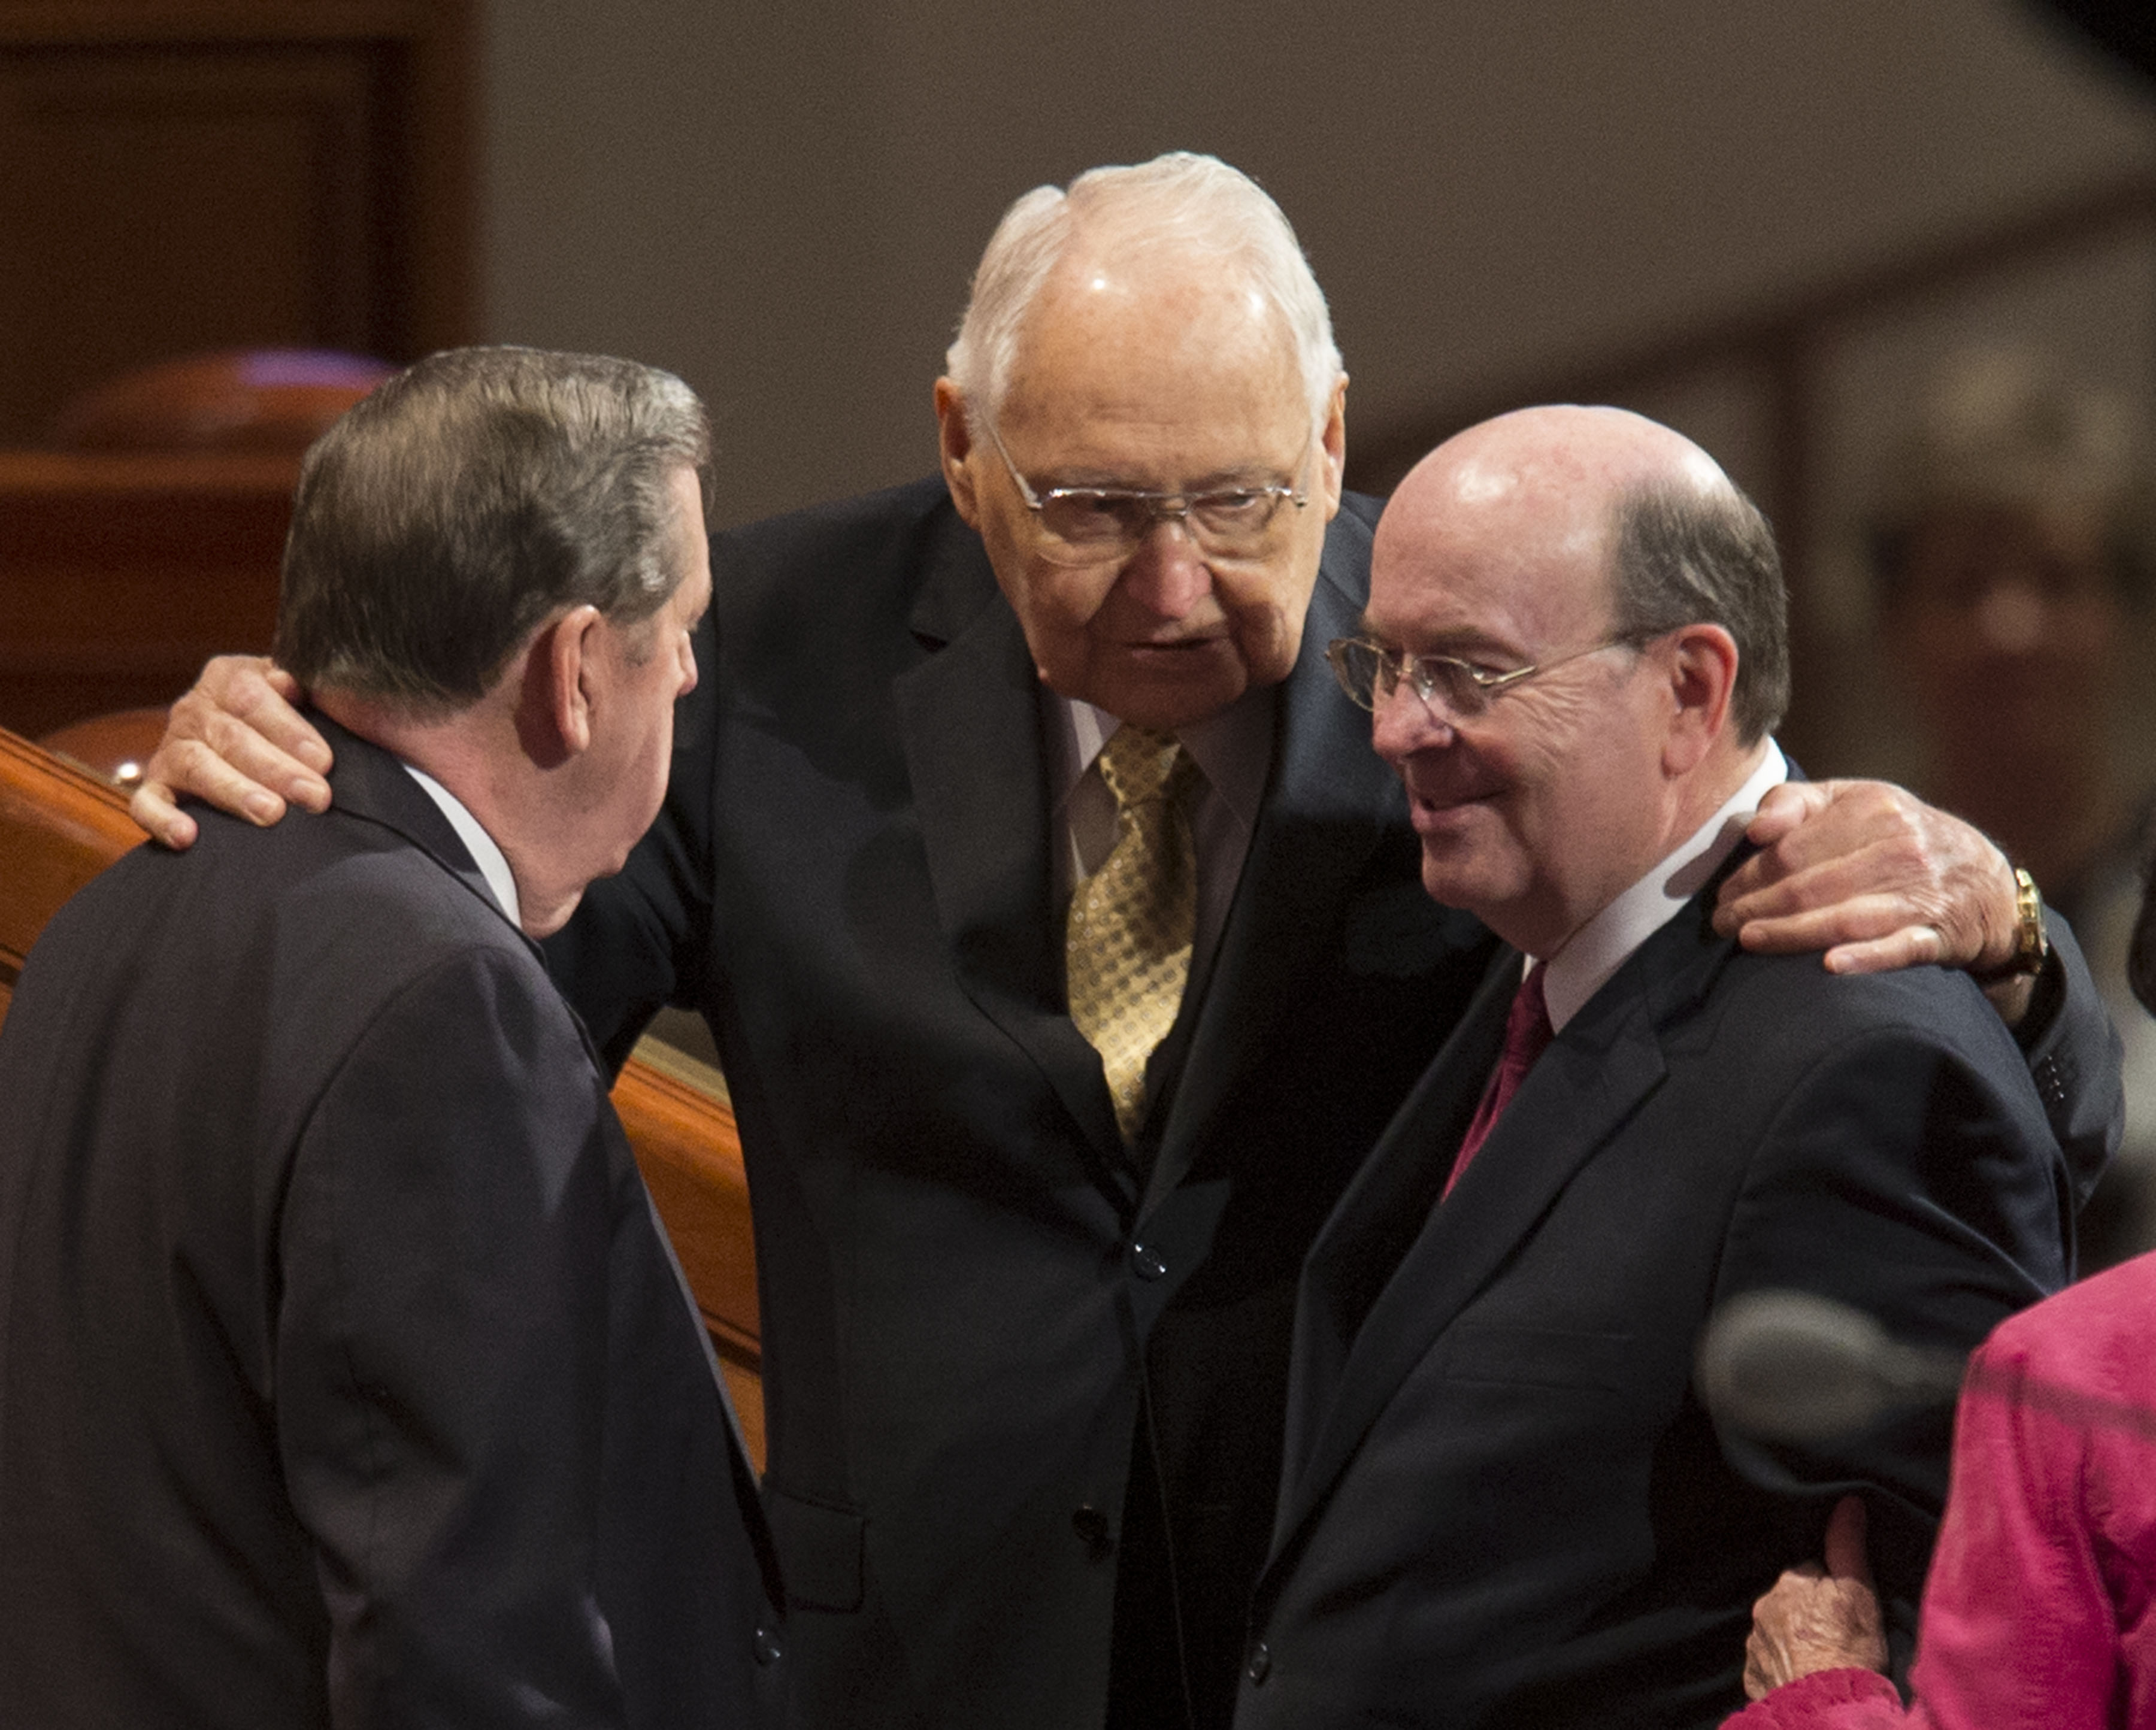 Elder L. Tom Perry, center, talks with Elder's Jeffrey R. Holland and Quentin L. Cook of the quorum of the twelve prior to the 184th Annual General Conference Saturday, April 5, 2014 at the Conference Center in Salt Lake City.